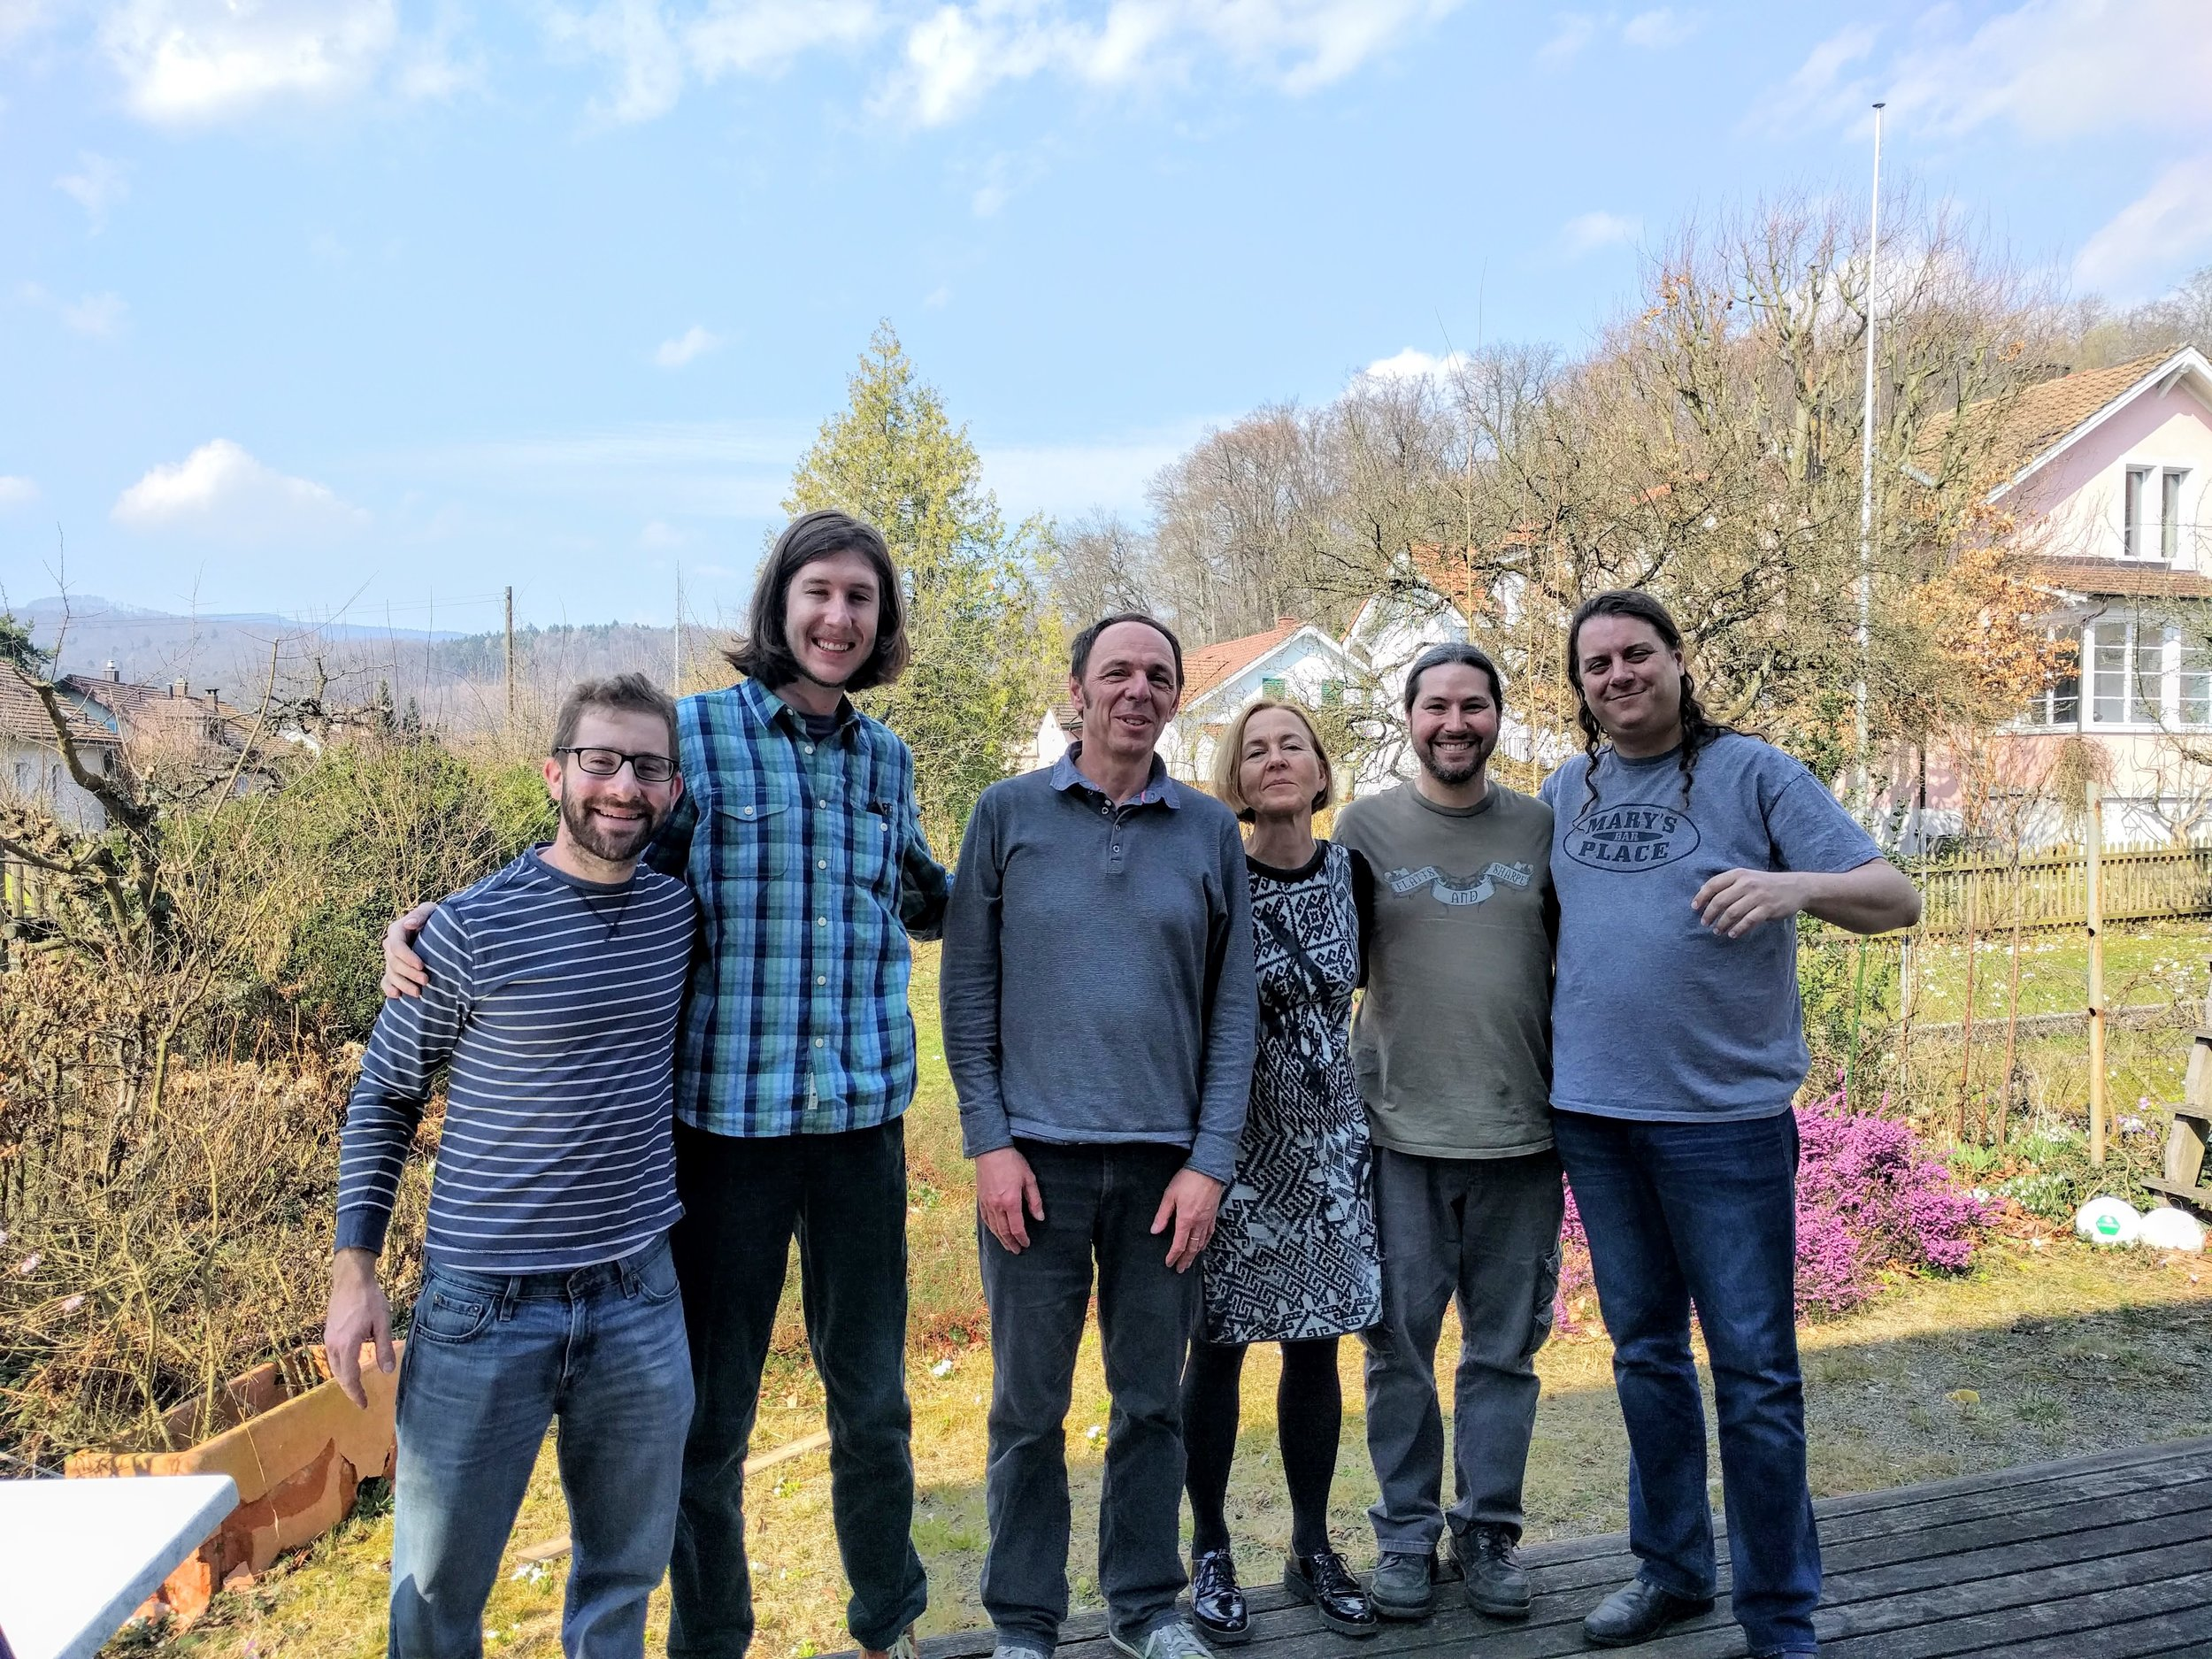 Martin, his wife Susannne + band in their backyard in 2017